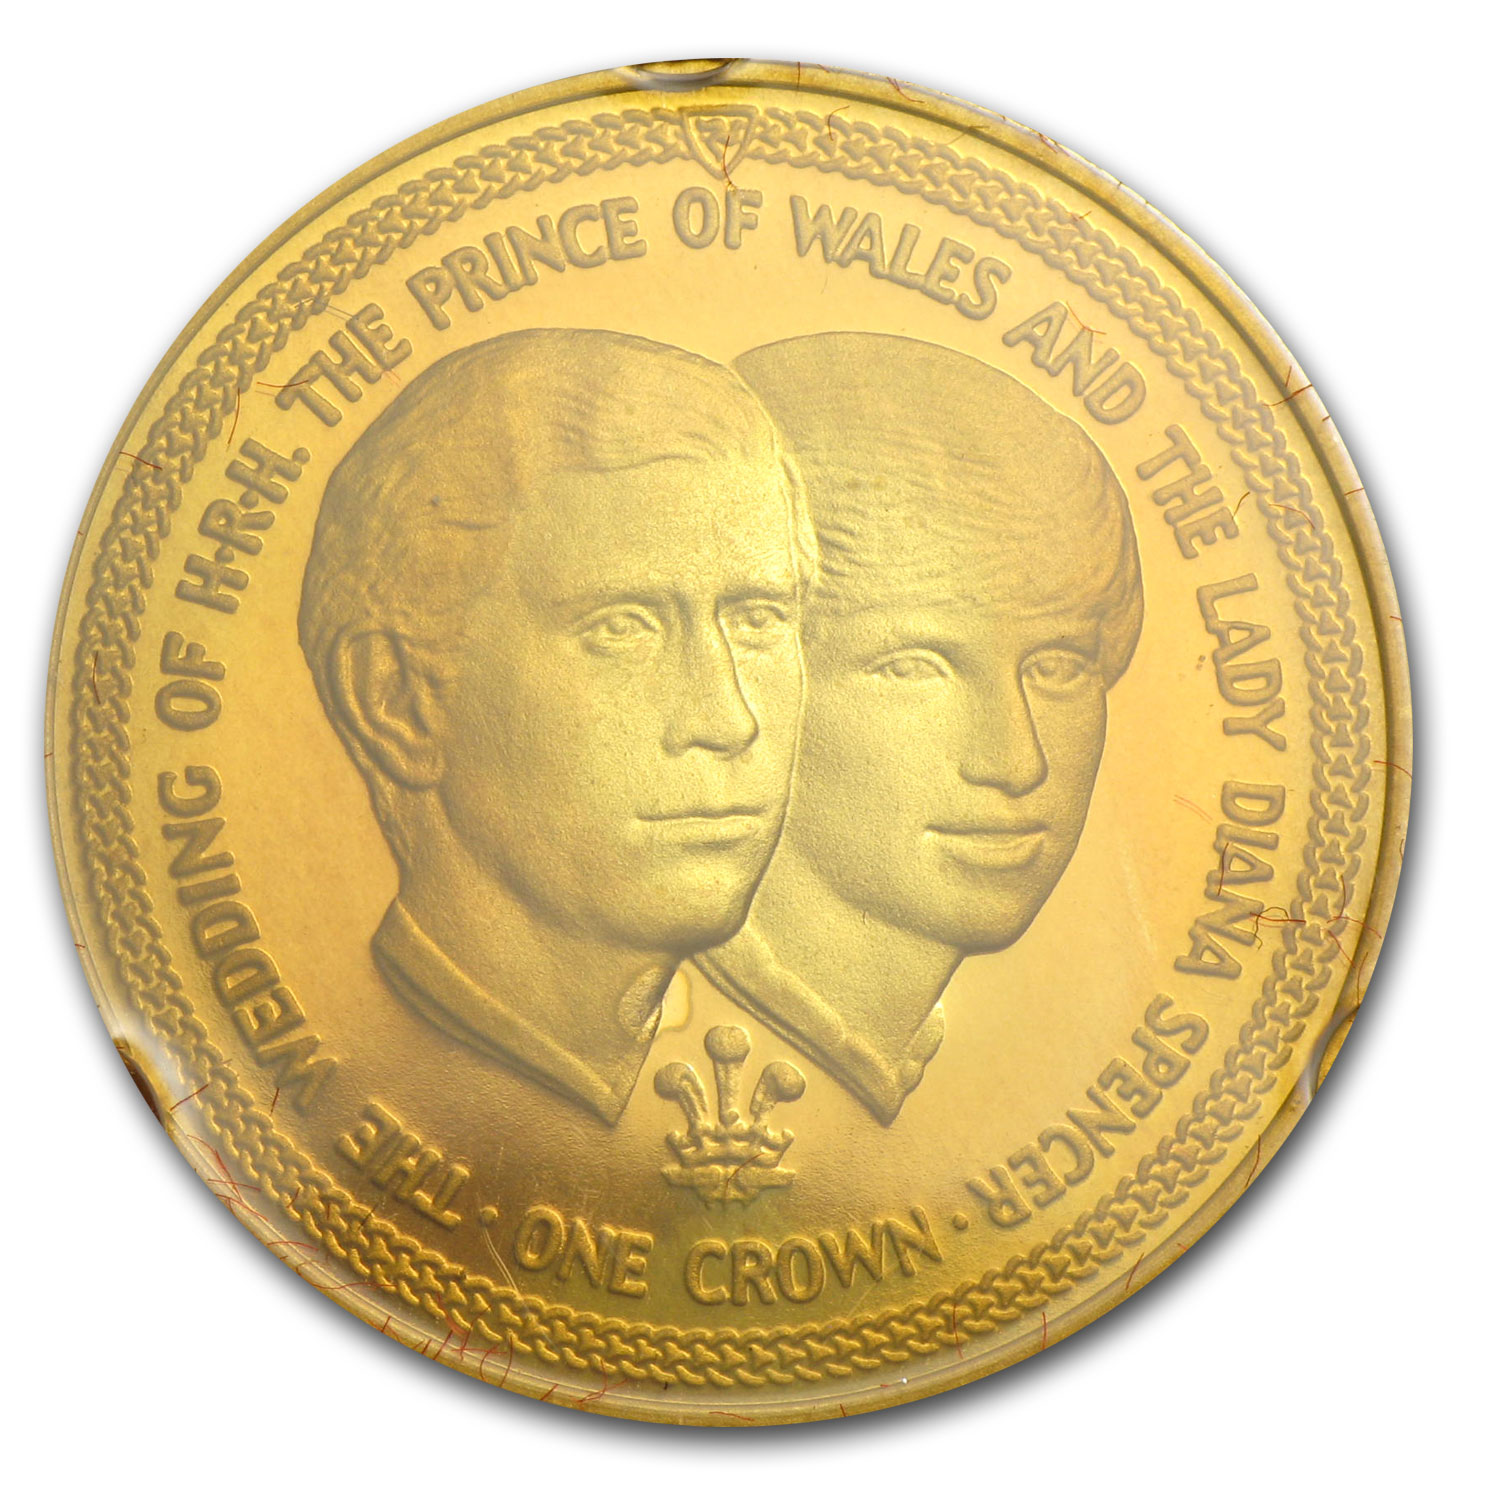 Isle of Man 1981 Proof Gold Crown Set (Charles & Diana)